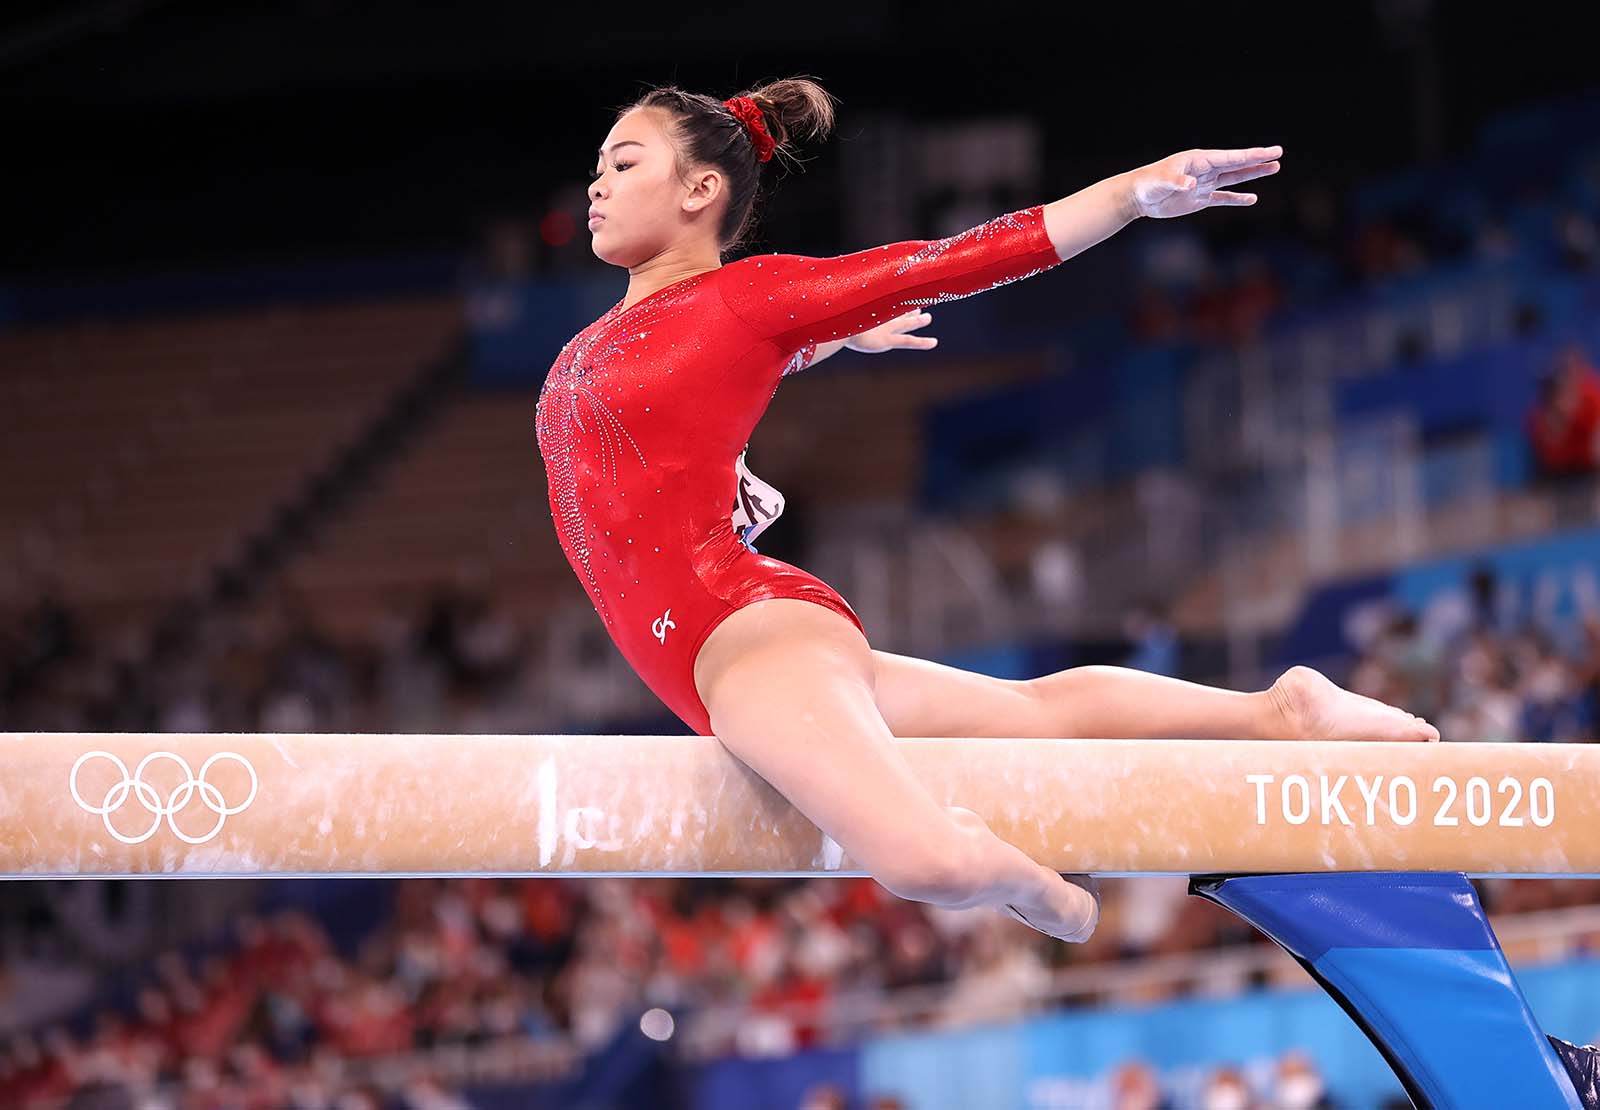 Team USA's Sunisa Lee competes during the women's balance beam final on August 3.